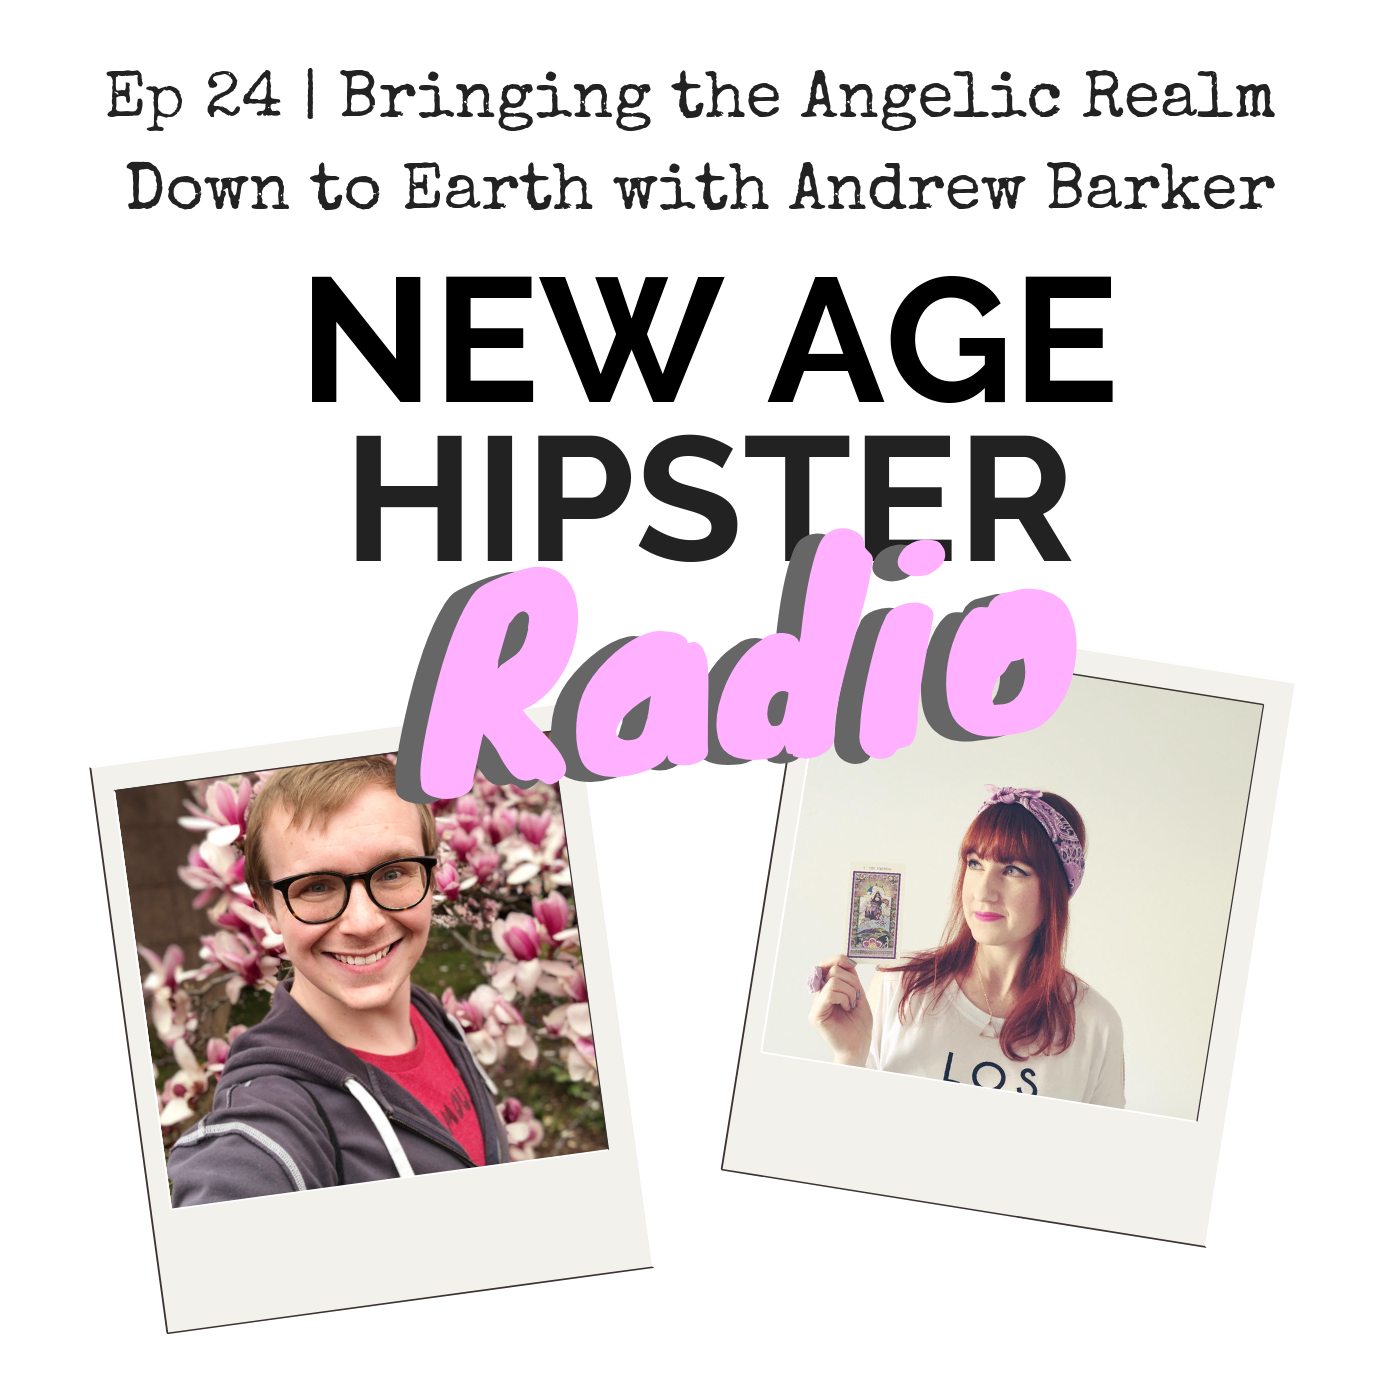 New Age Hipster Radio Podcast Angels with Andrew Barker